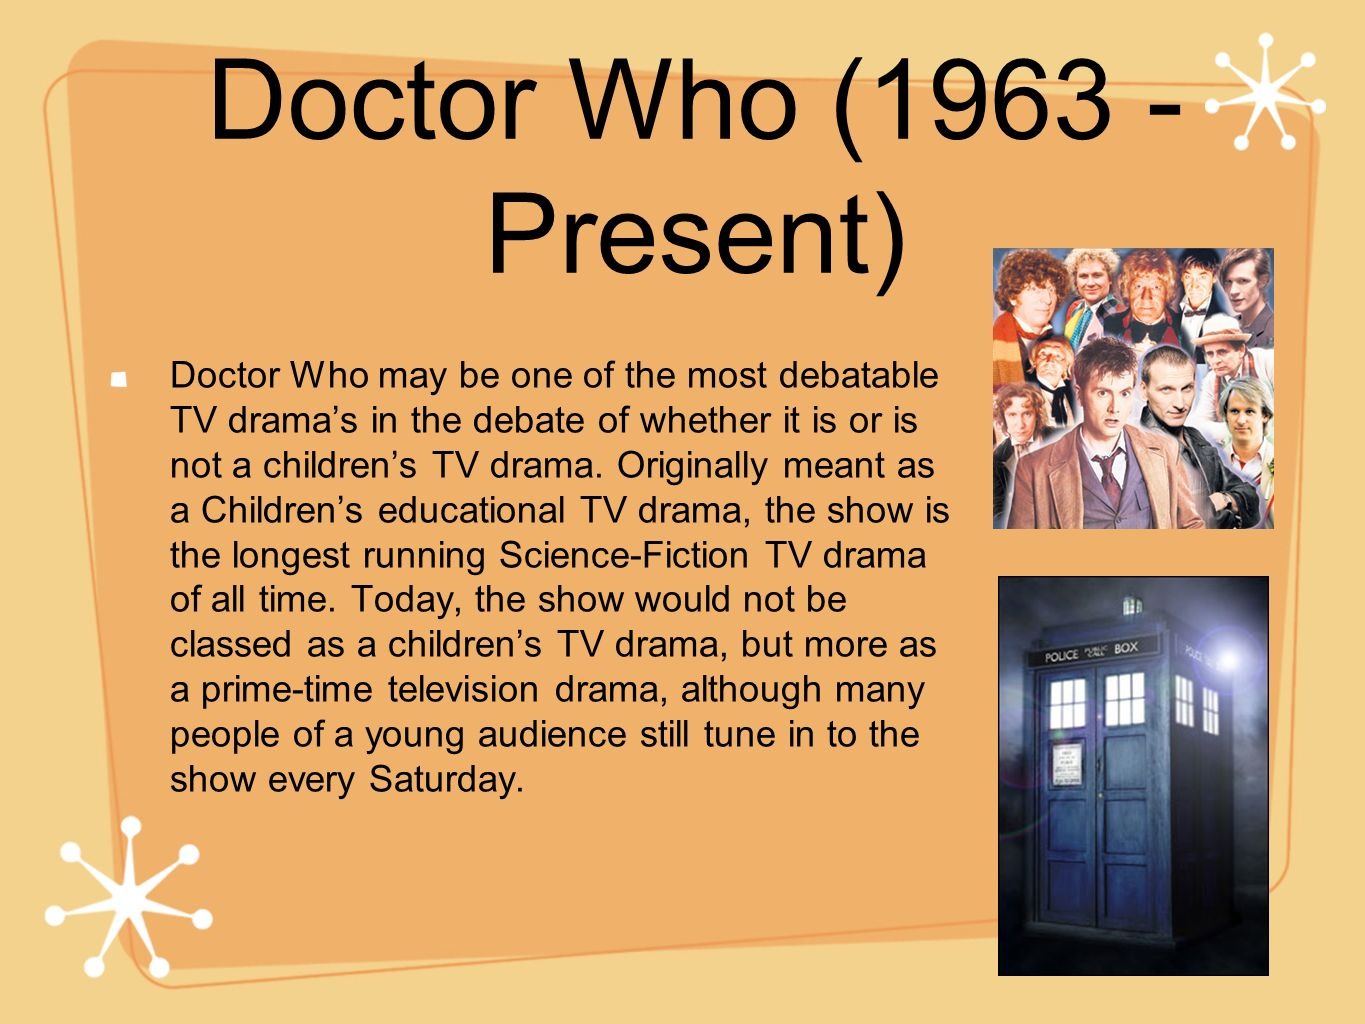 Doctor Who (1963 - Present) Doctor Who may be one of the most debatable TV dramas in the debate of whether it is or is not a childrens TV drama. Origi